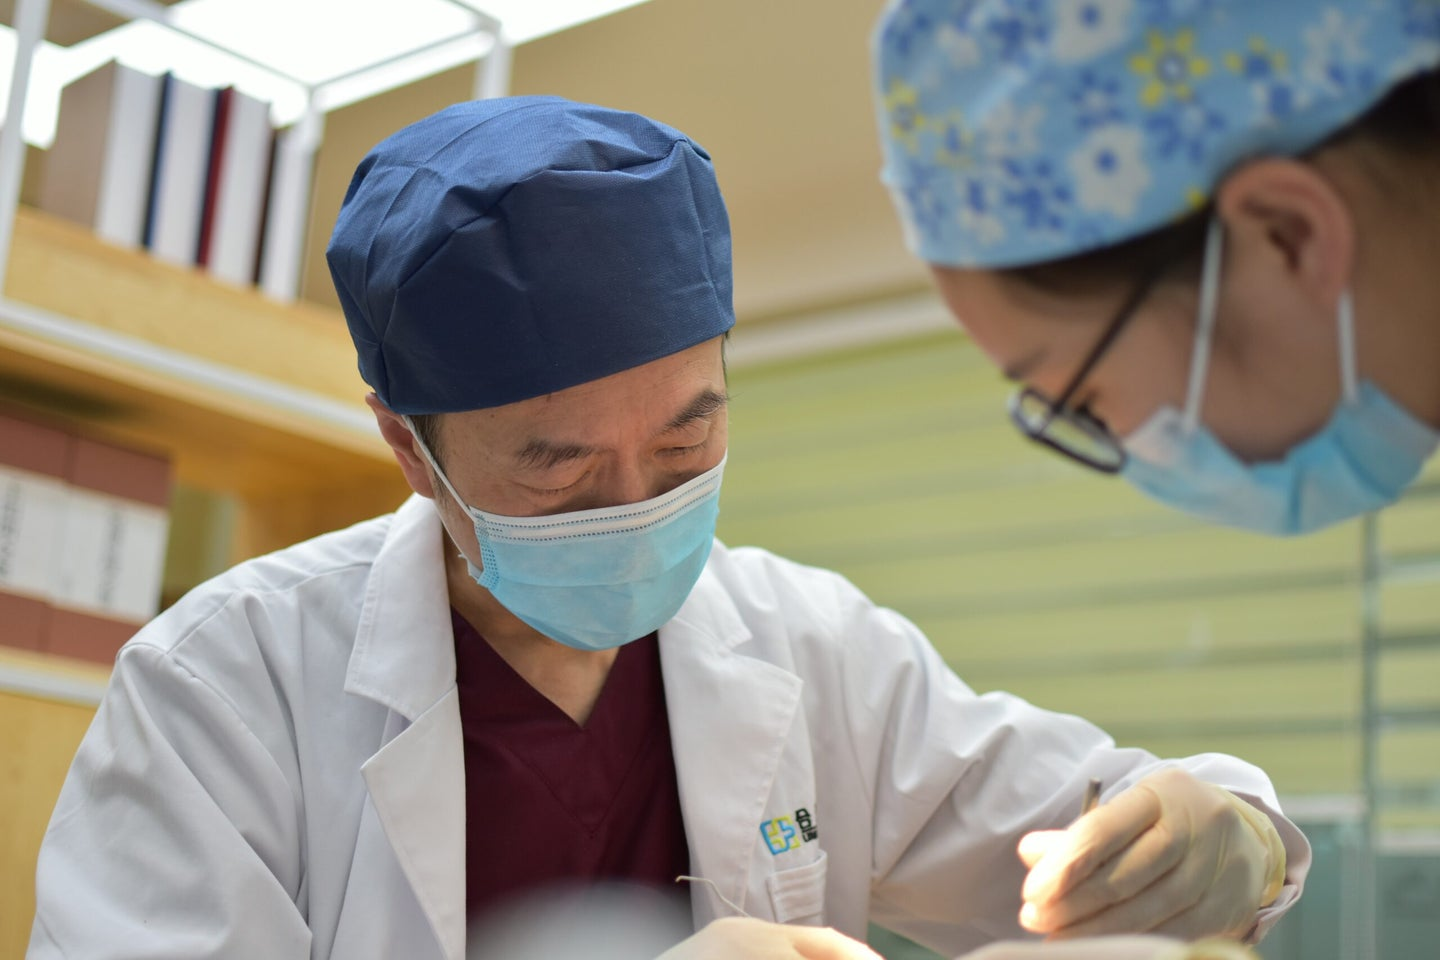 A Chinese doctor standing over a patient